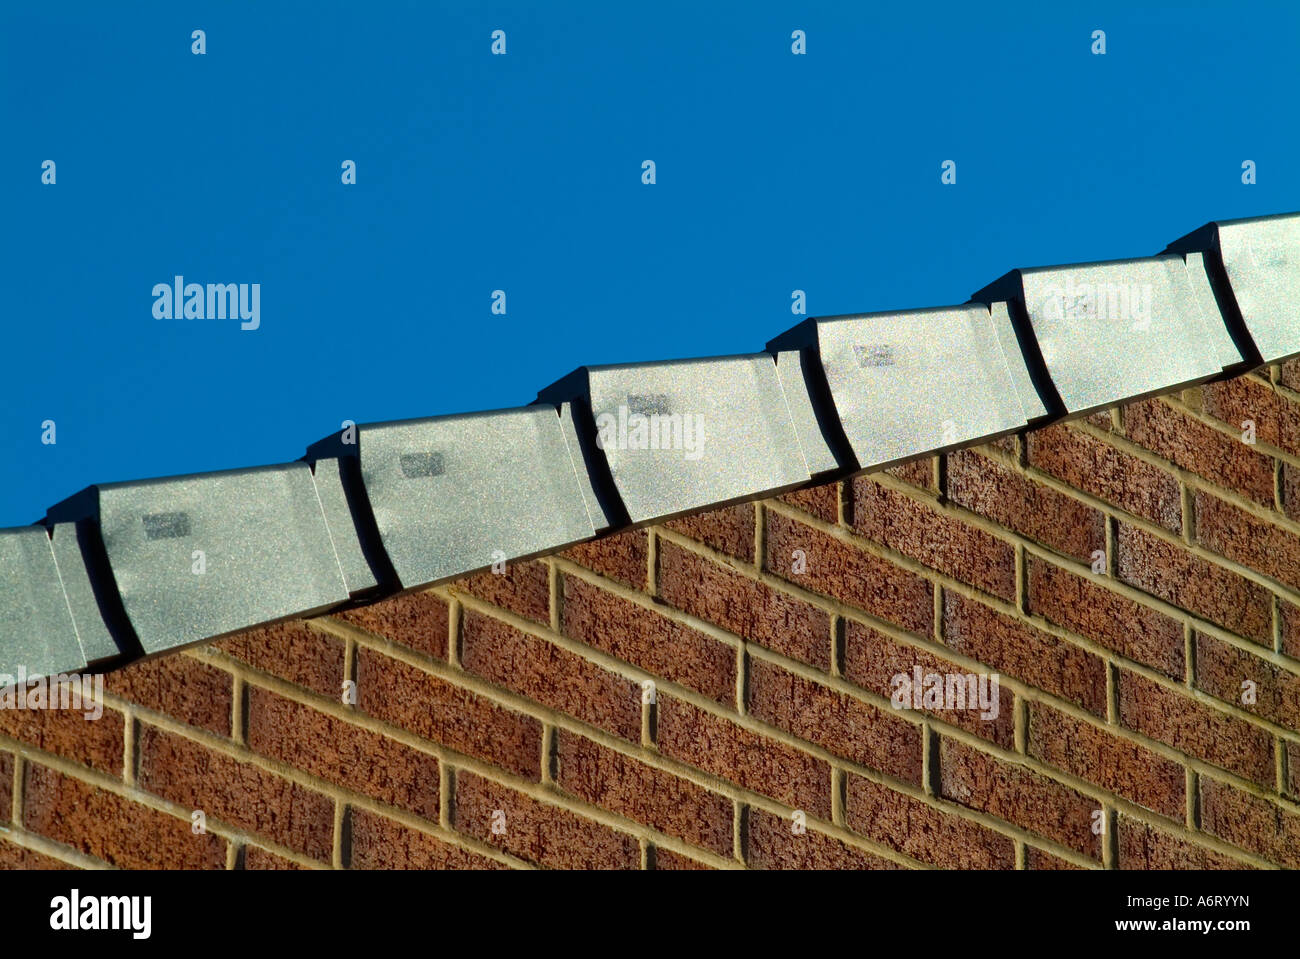 Plastic Roofing Stock Photos Amp Plastic Roofing Stock